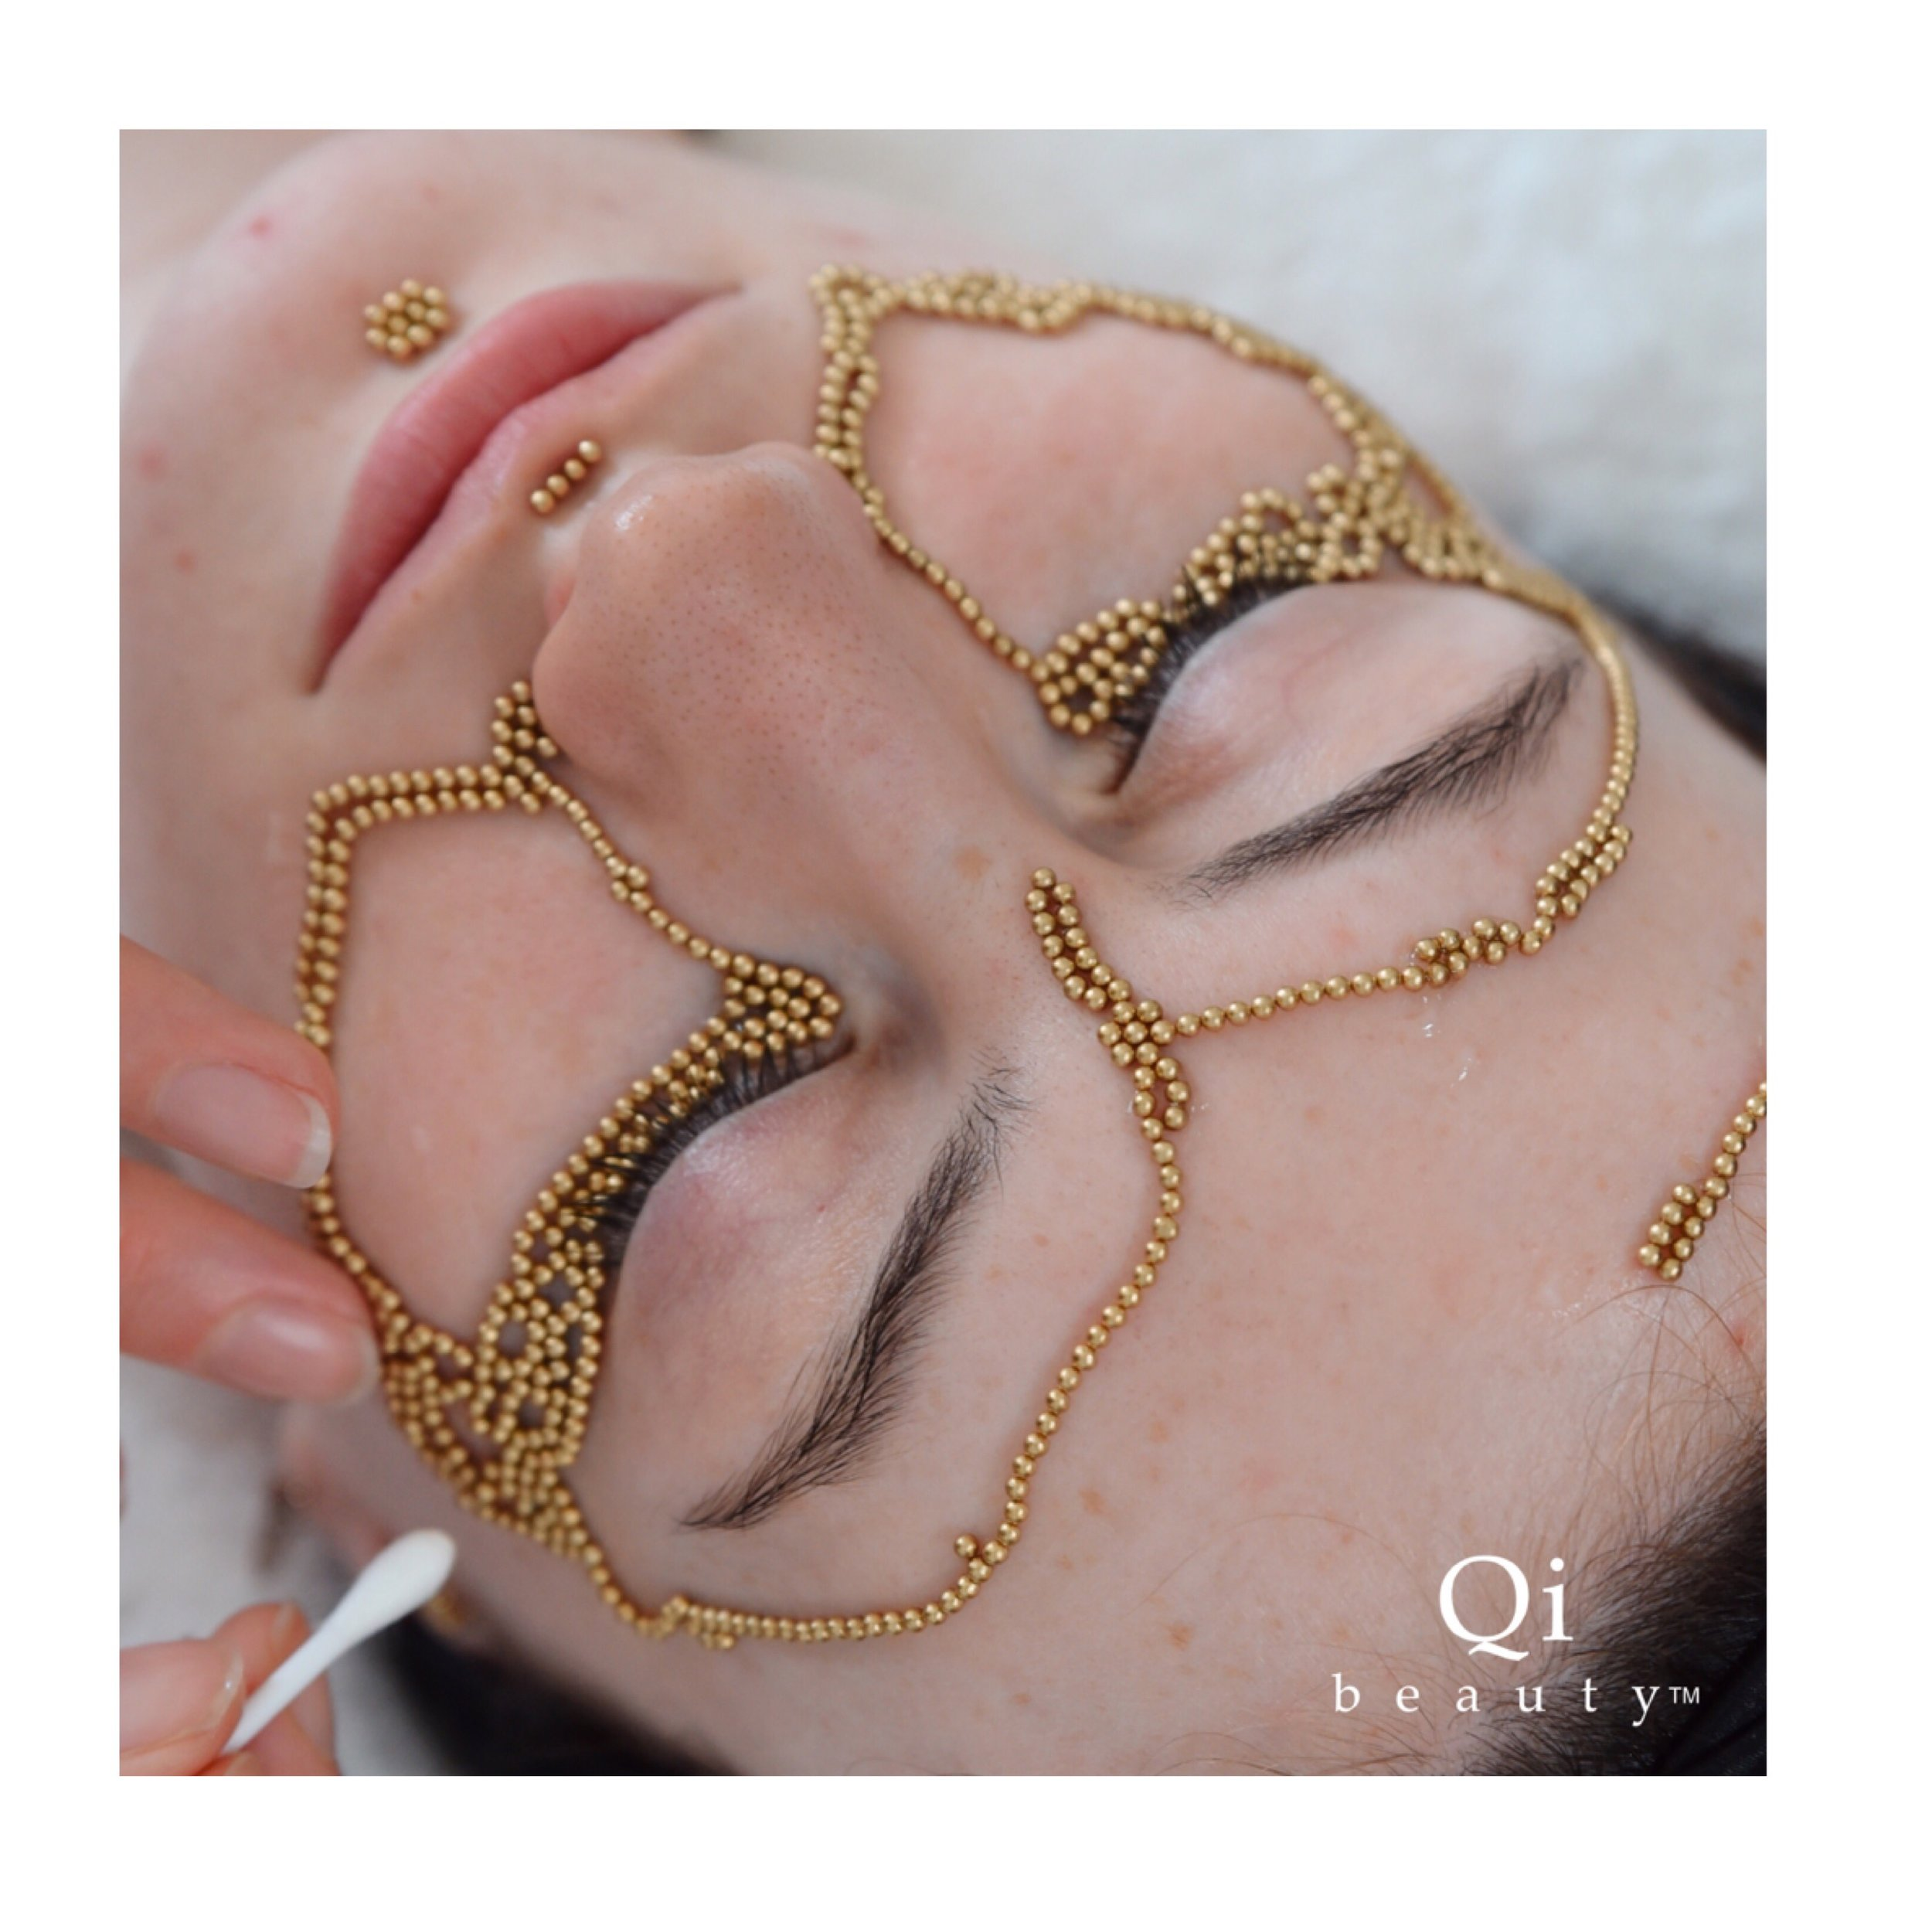 Qi-beauty-facial.JPG